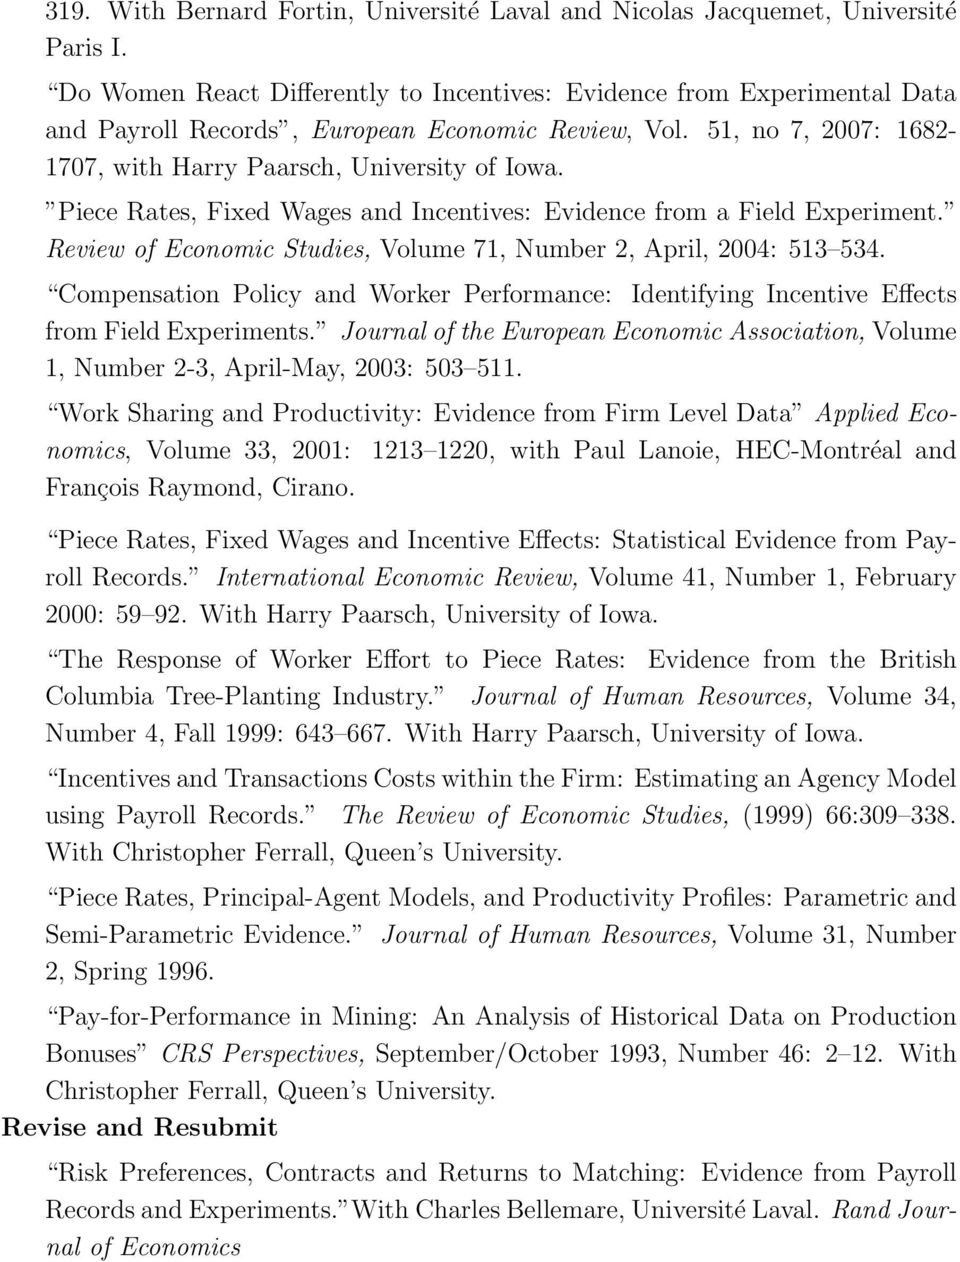 Piece Rates, Fixed Wages and Incentives: Evidence from a Field Experiment. Review of Economic Studies, Volume 71, Number 2, April, 2004: 513 534.